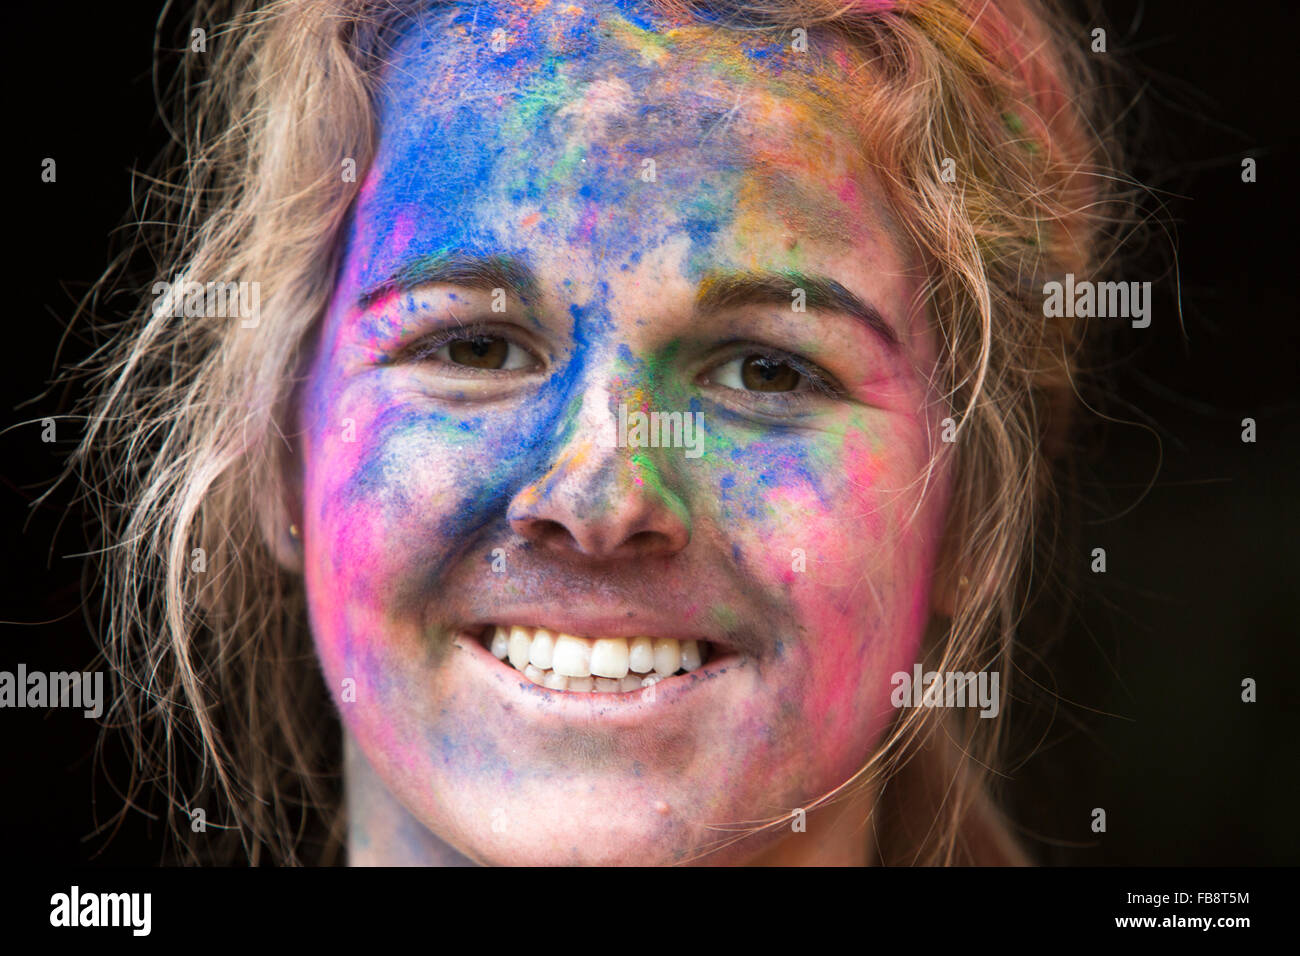 Pretty teenage girl with her face splattered with colourful paint after participating in the Colour Run - Stock Image